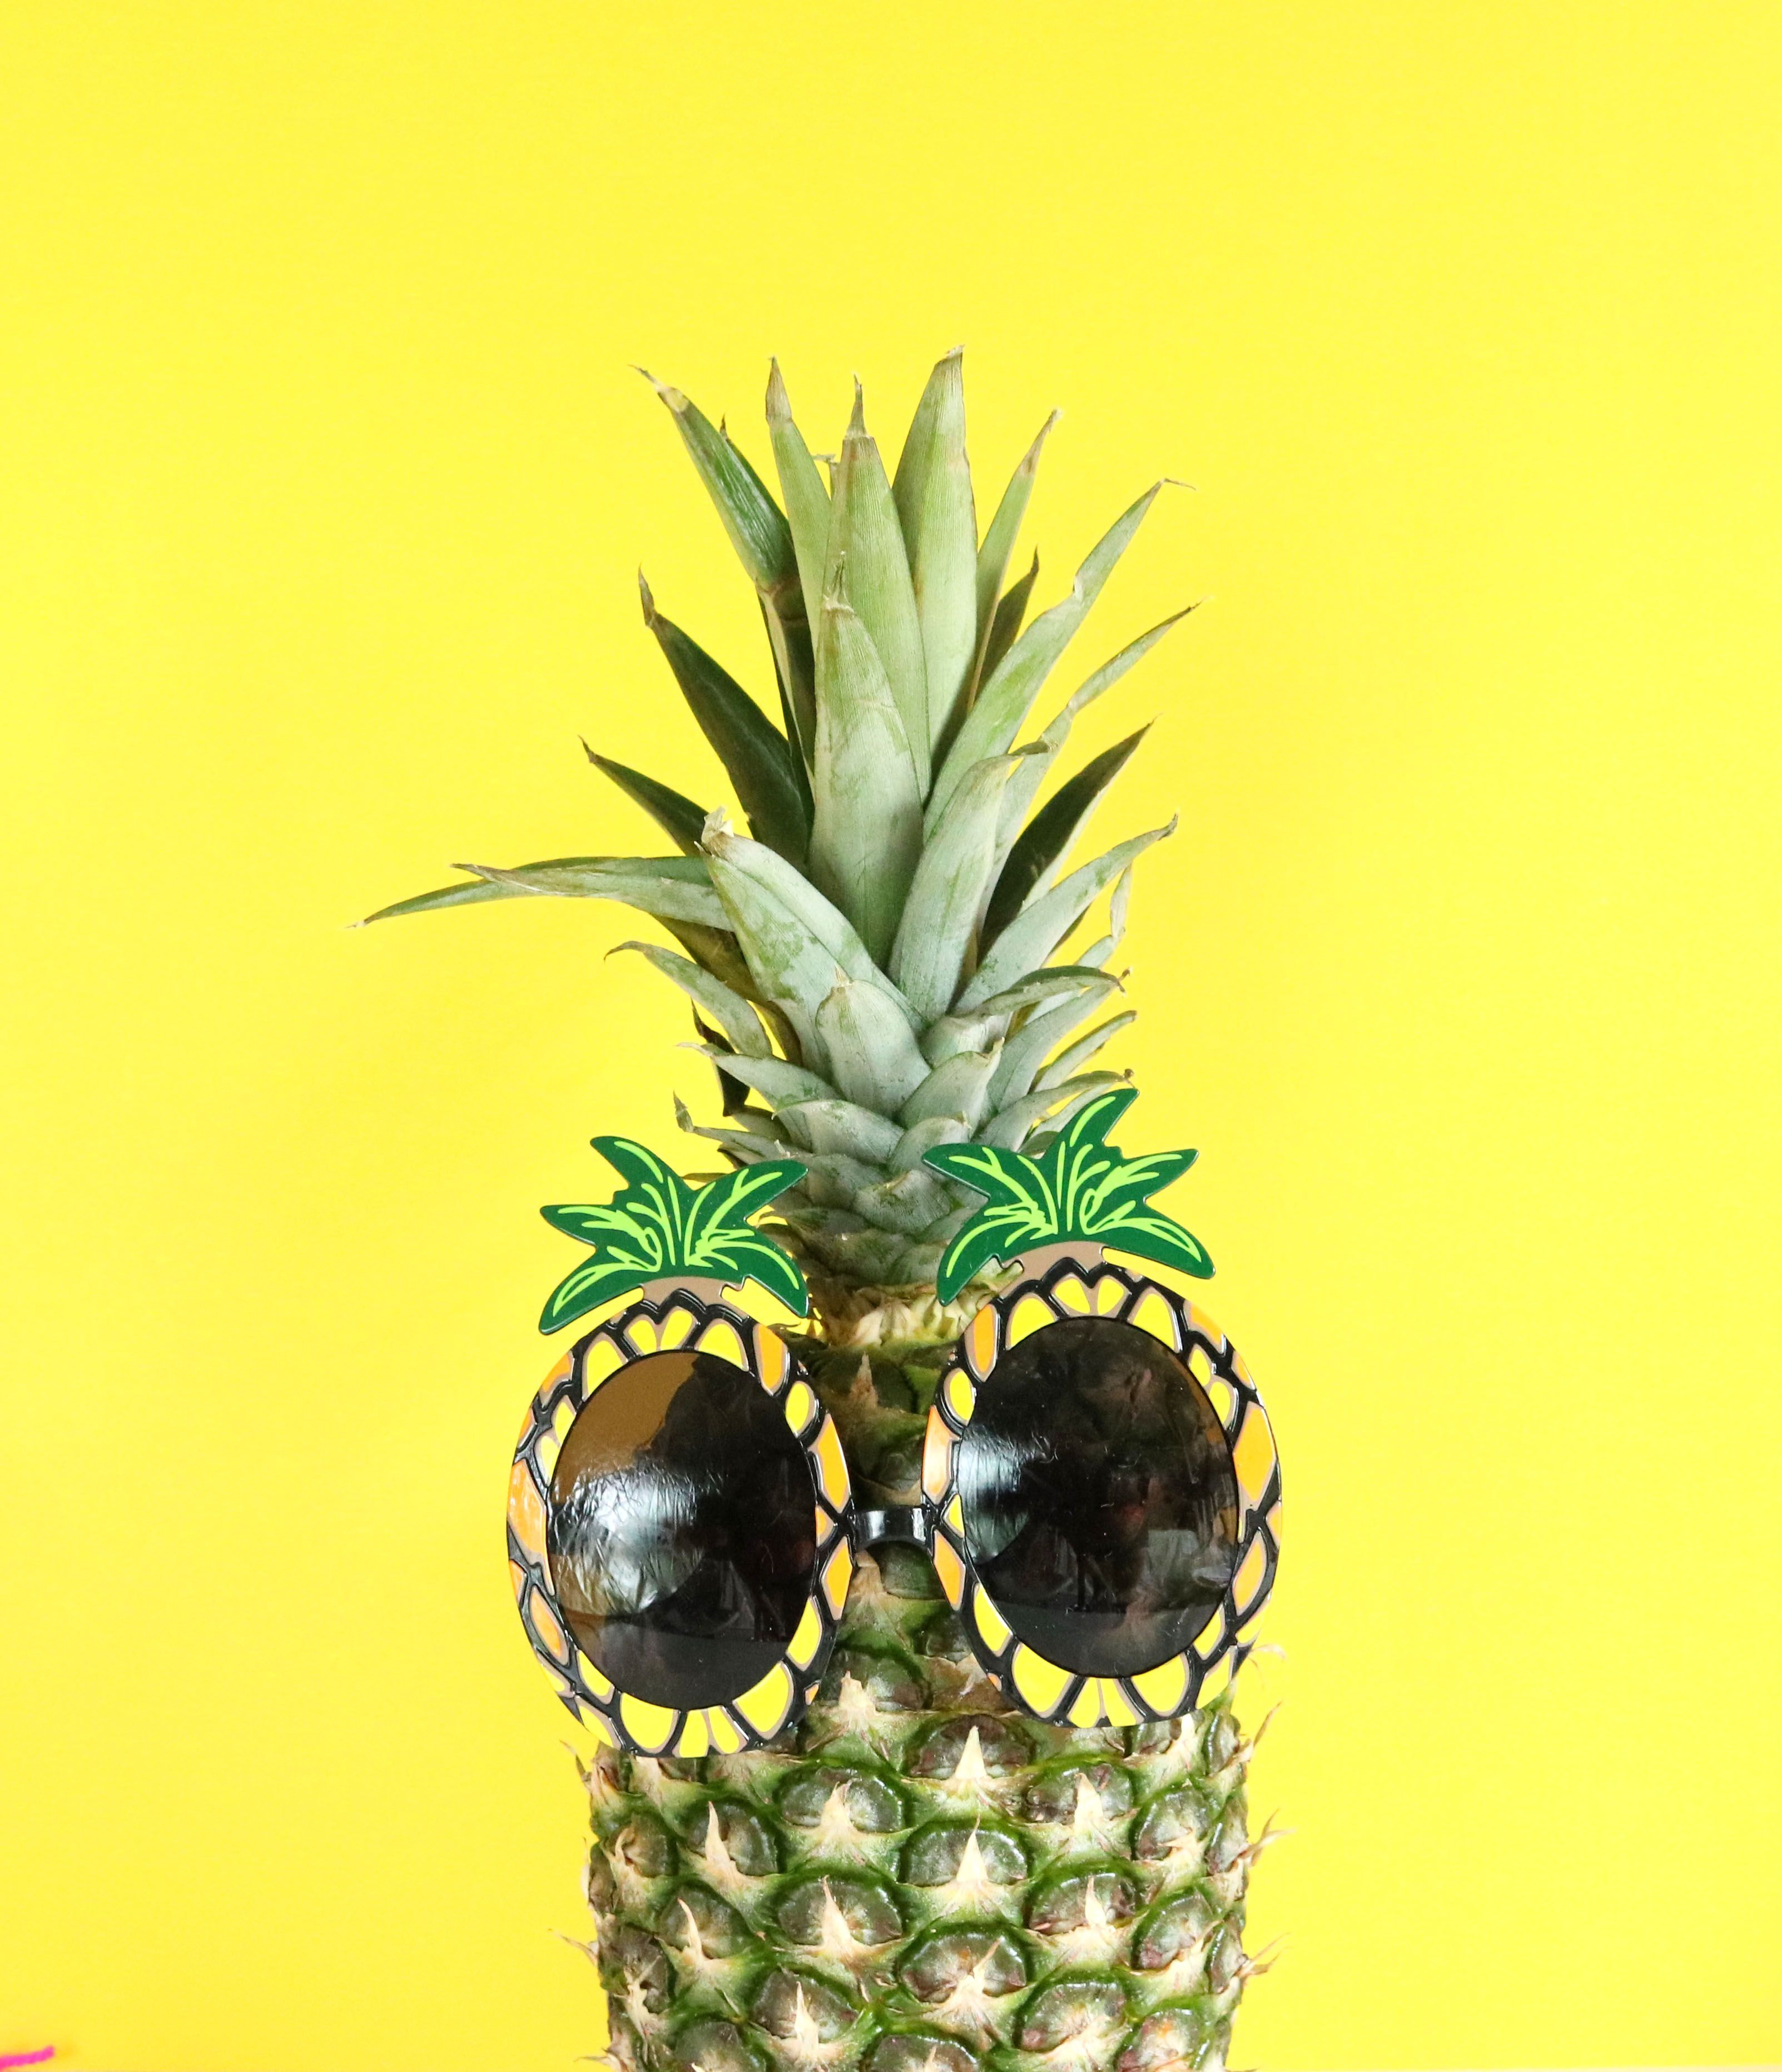 Pineapple With Sunglasses Tumblr Pineapple Sunglasses Party Girl Juicy Fruit Pineapple